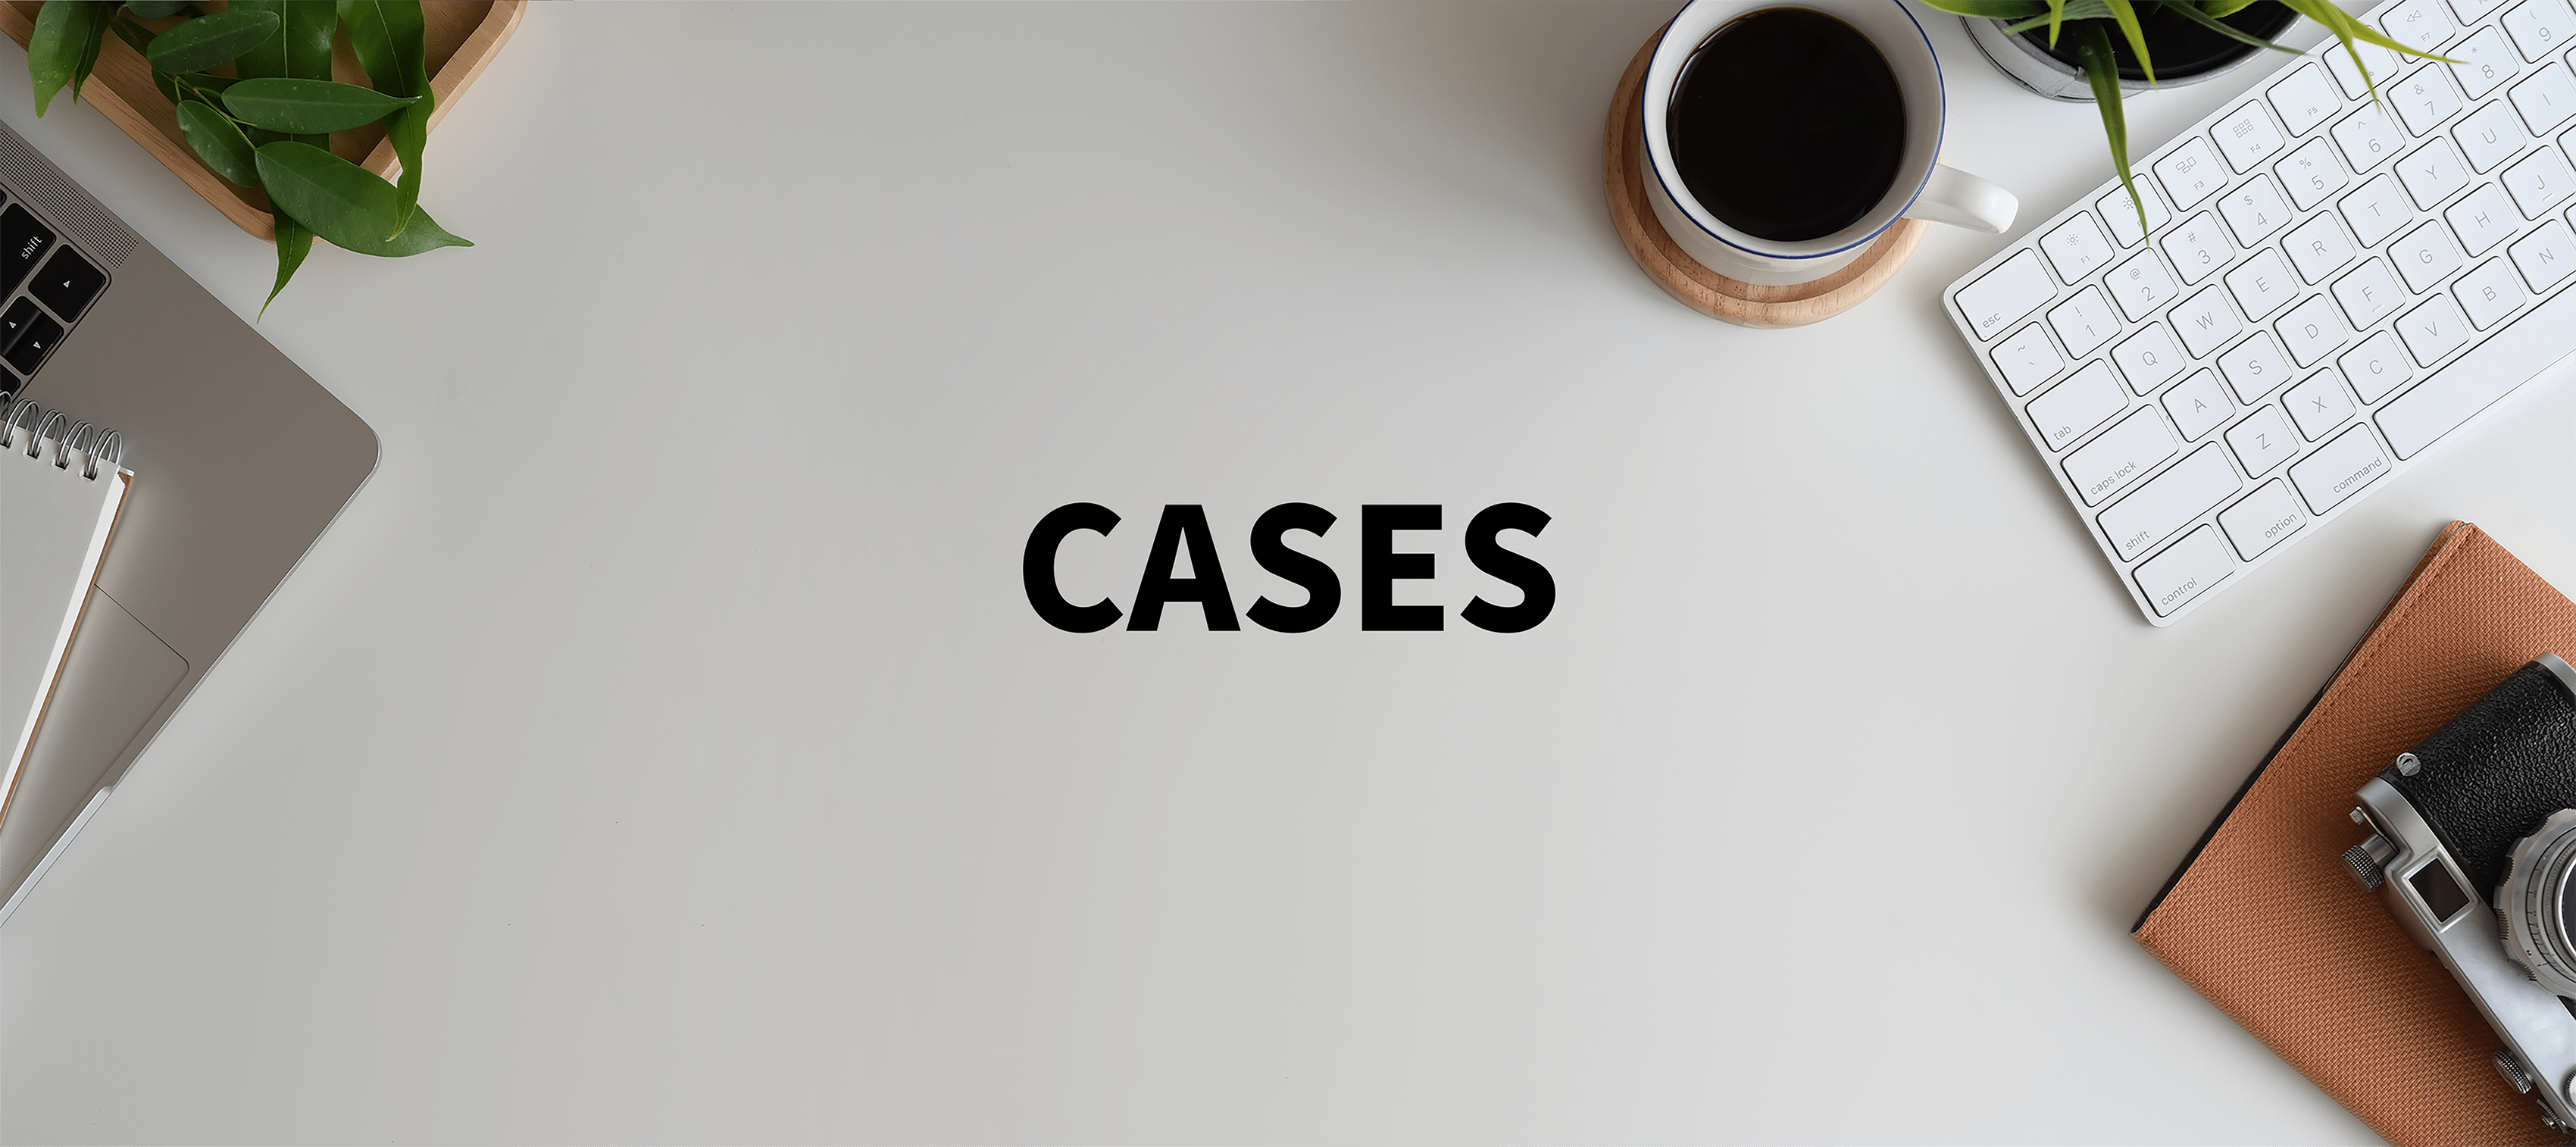 Cases under 5 mb